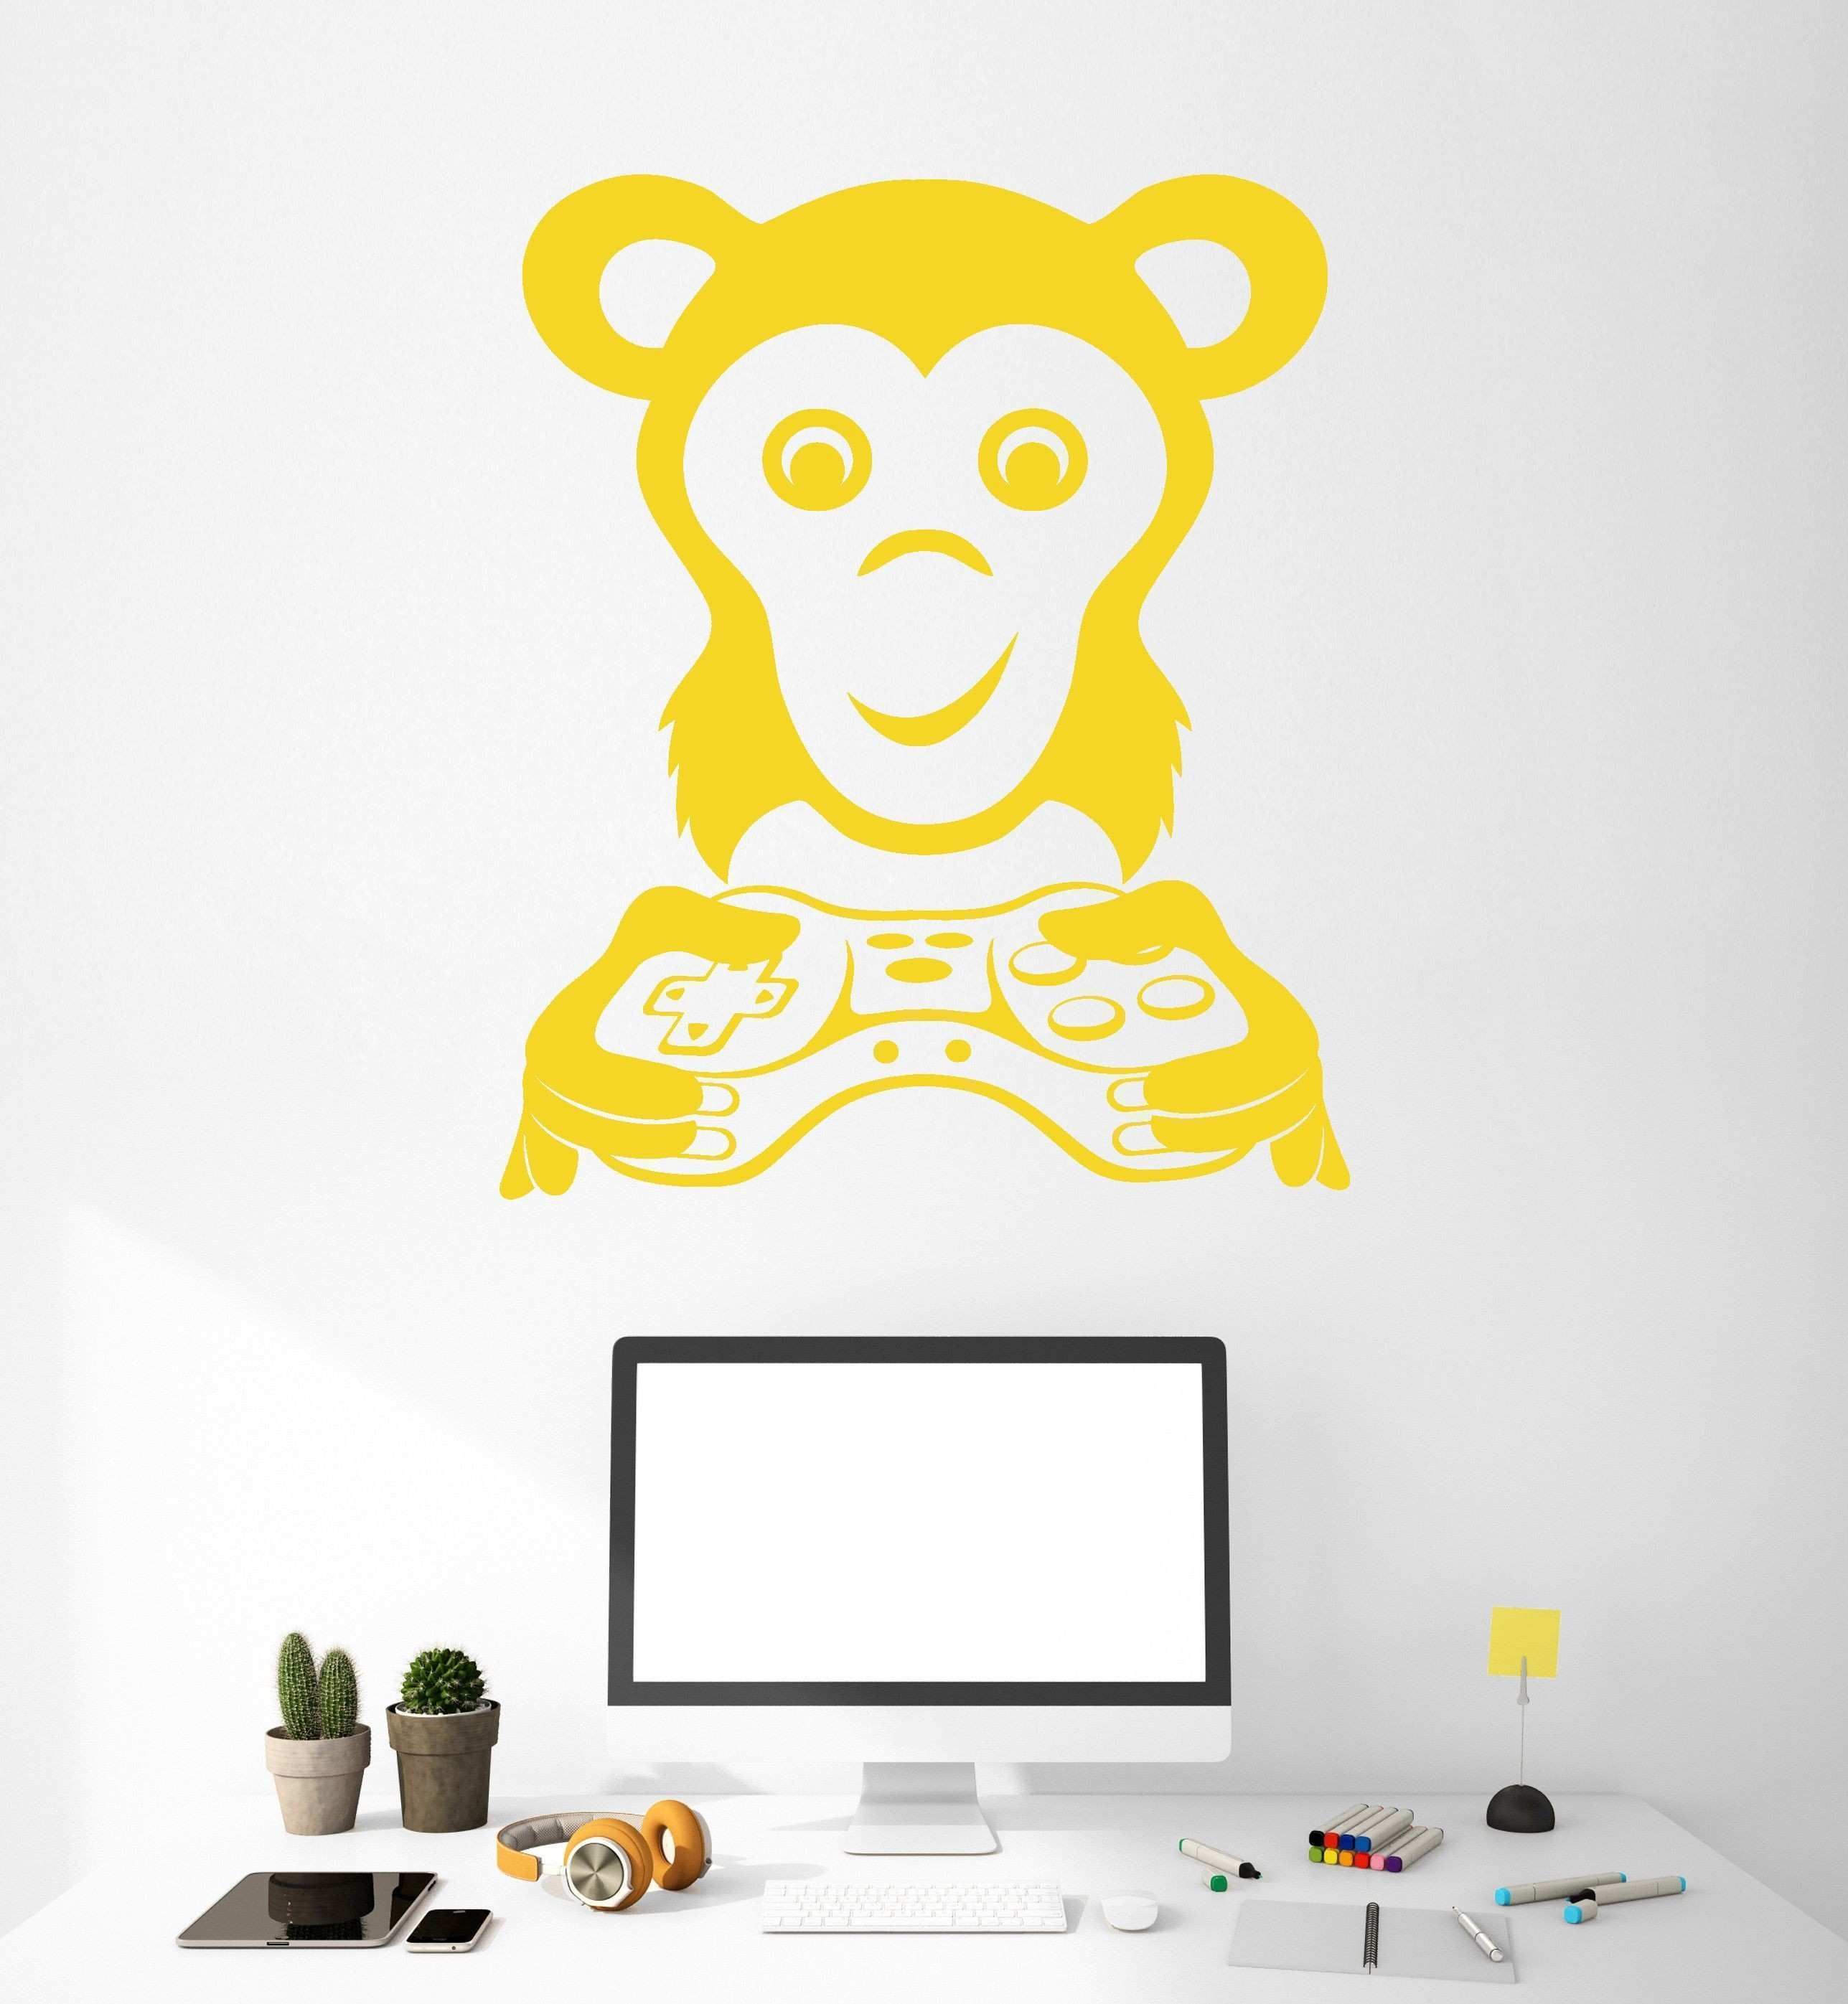 Vinyl Wall Decal Video Game Gamer Monkey Animal Joystick Stickers